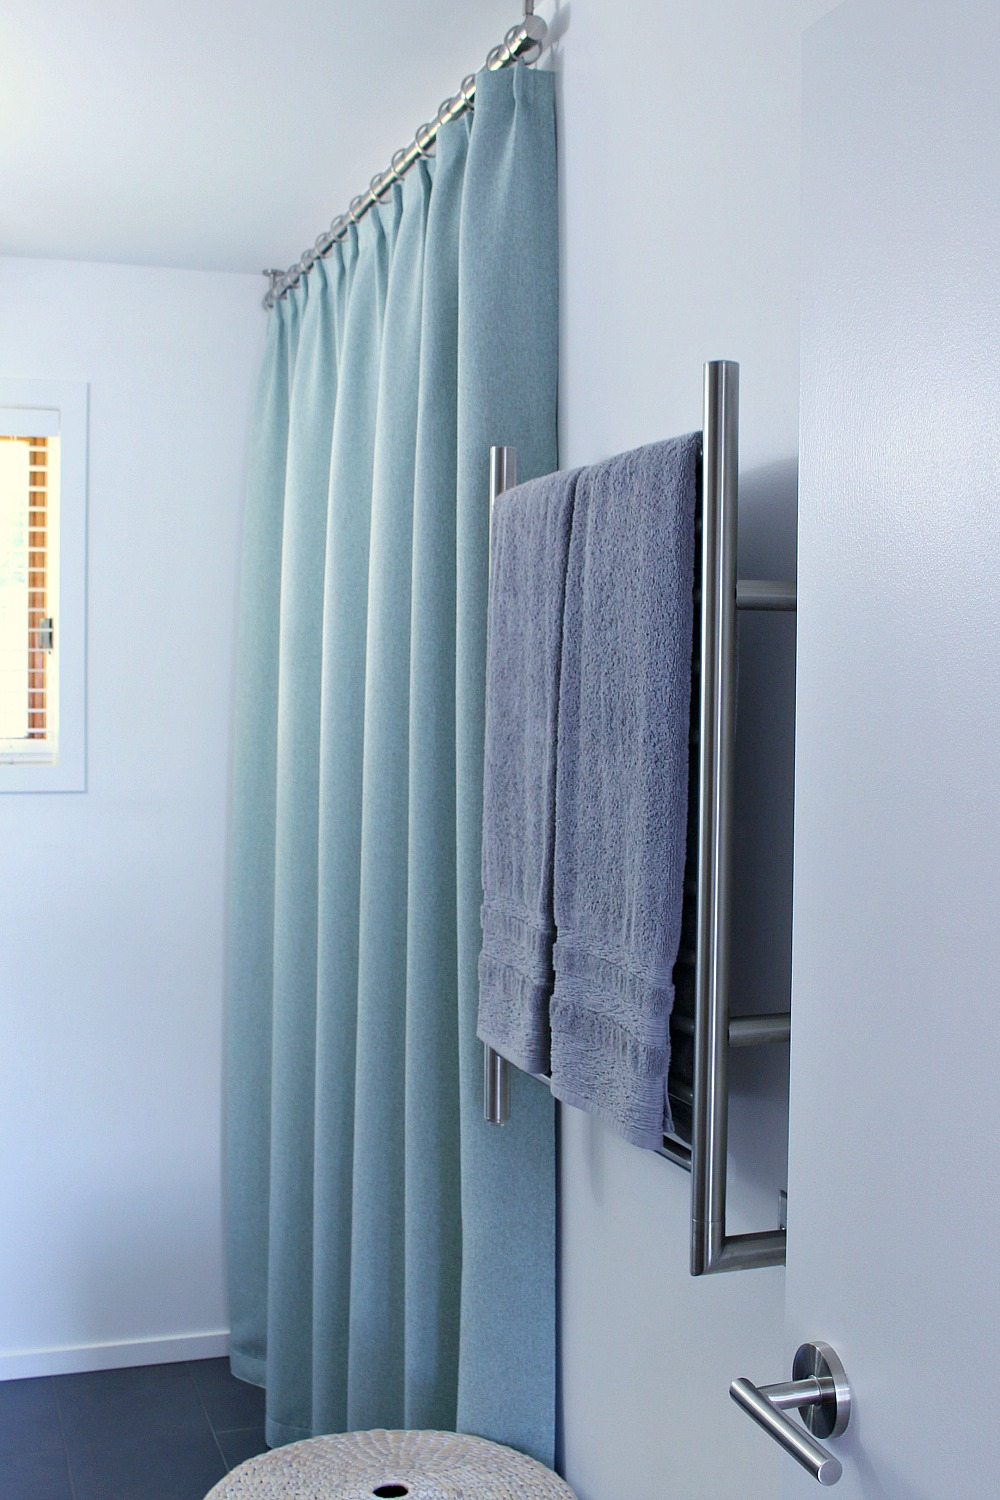 How High To Mount Shower Curtain Rod   Gopelling.net